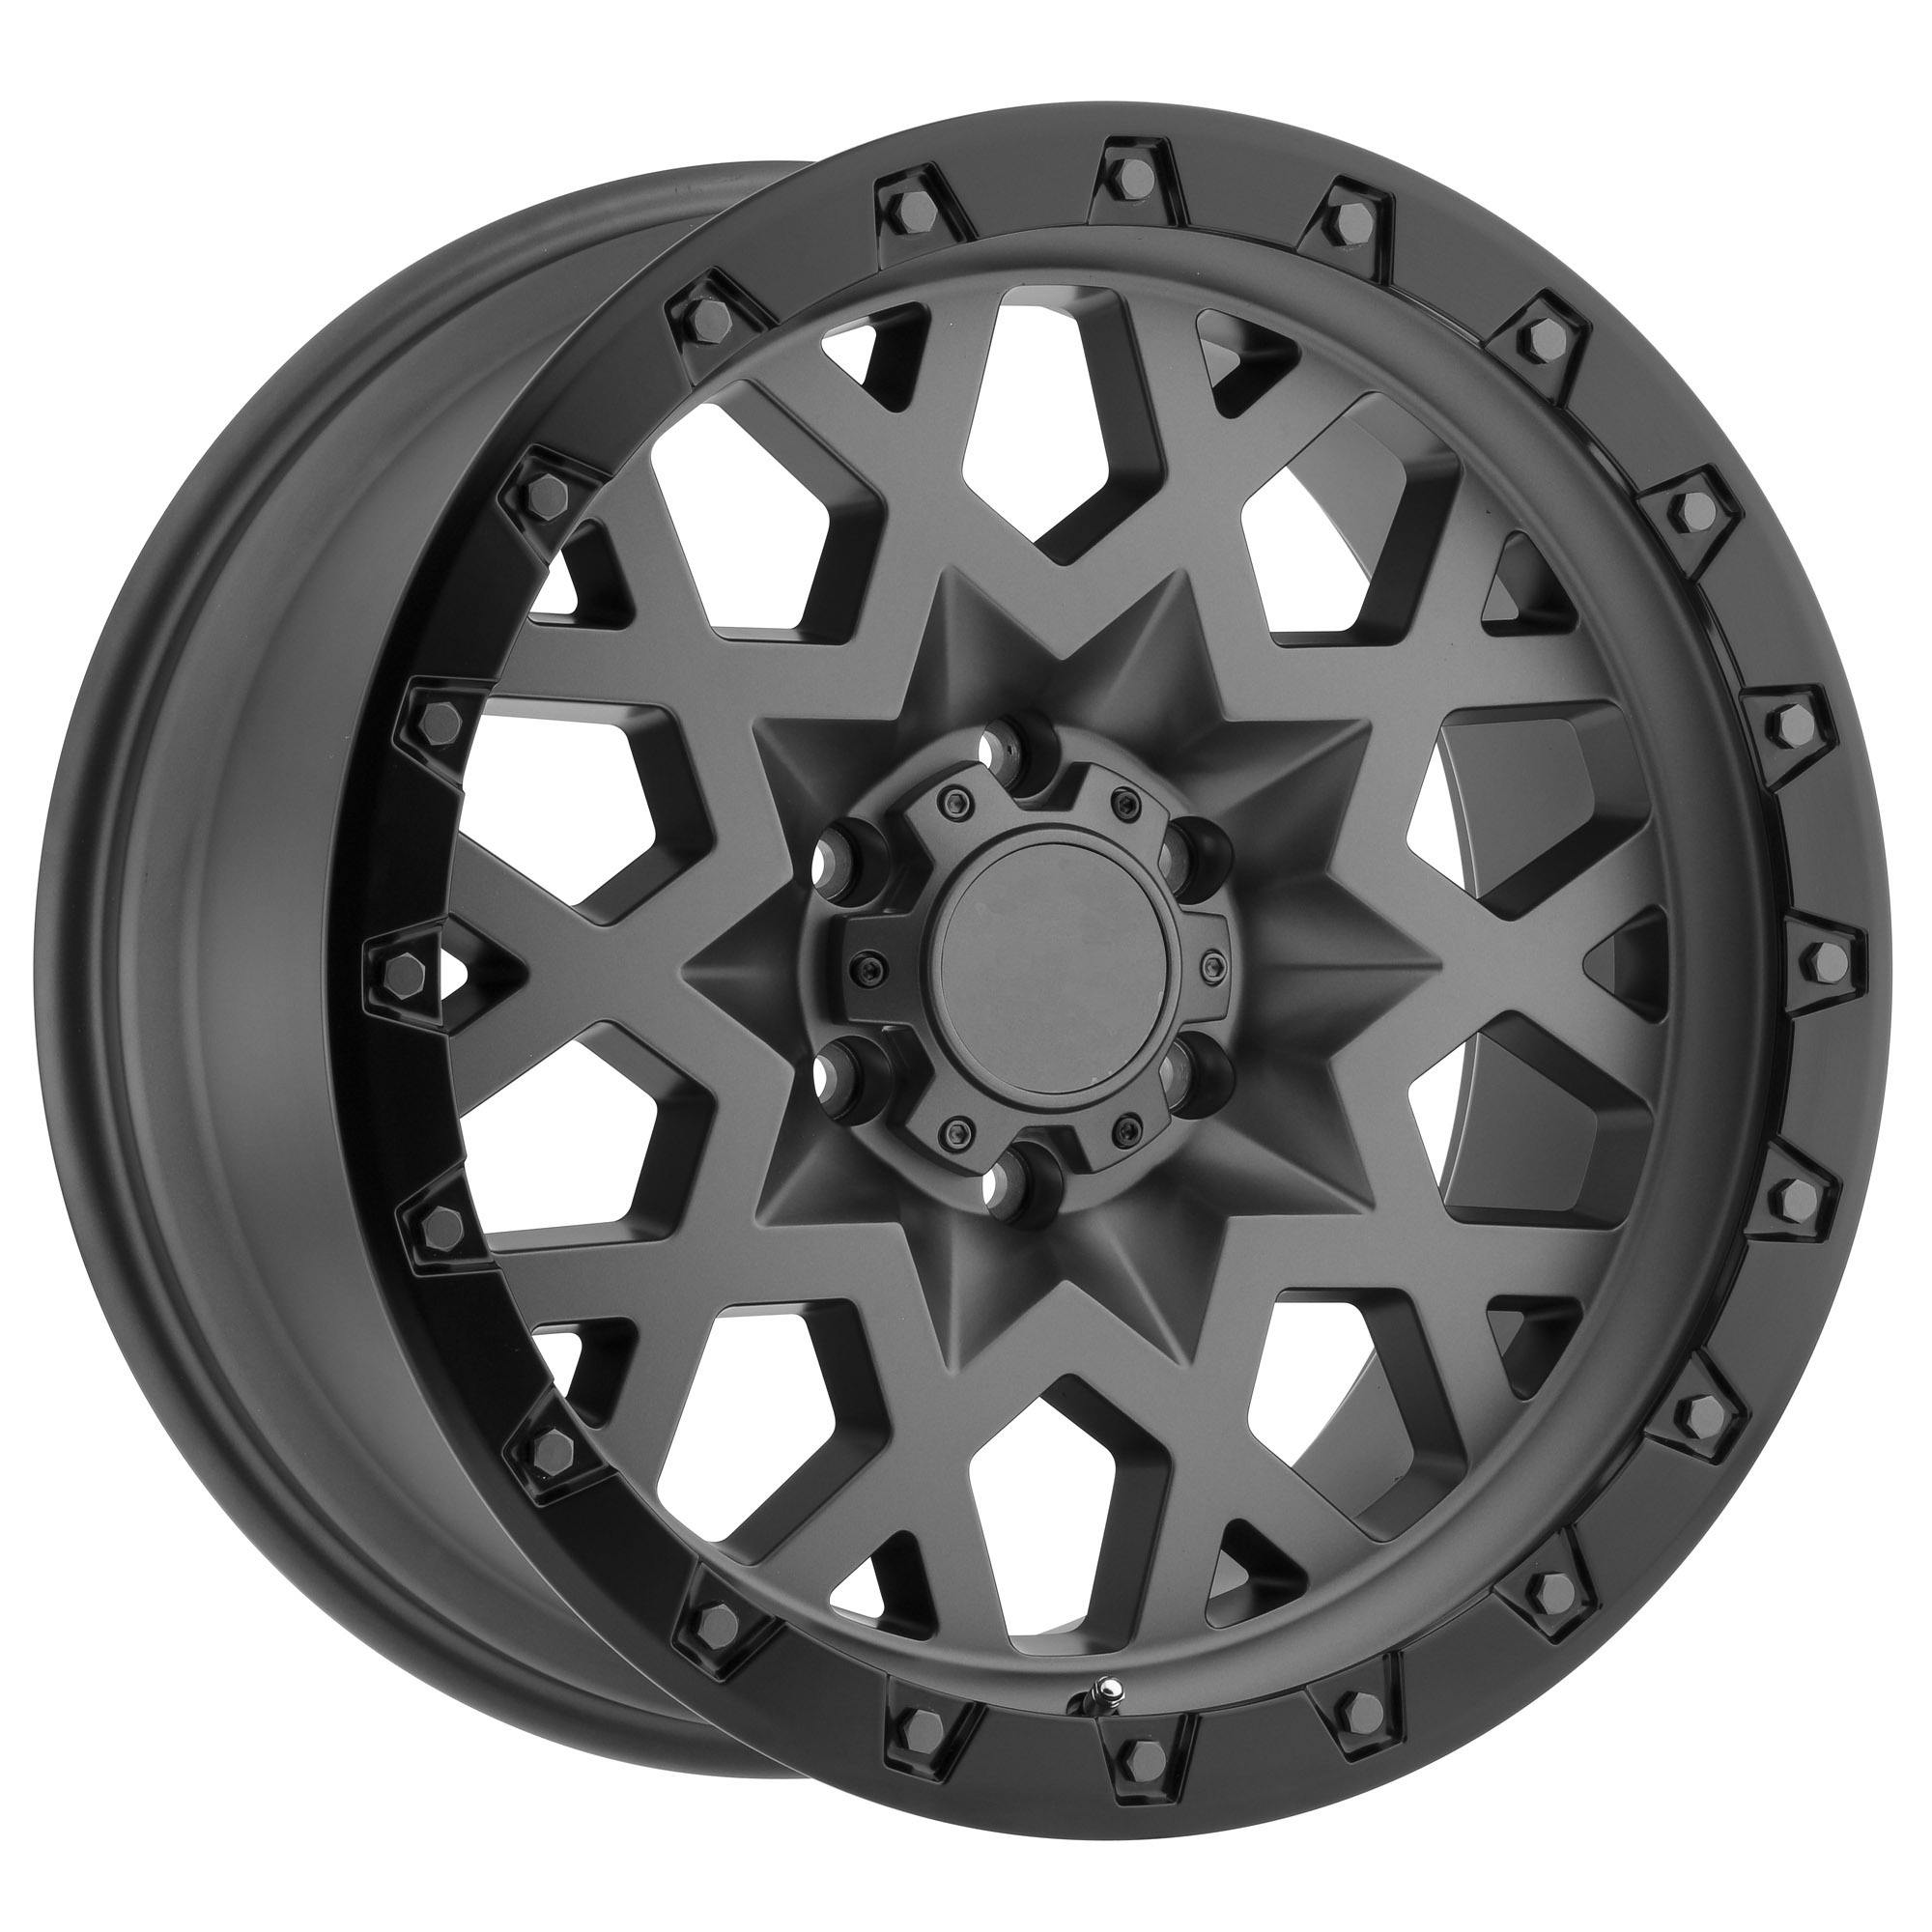 New design factory direct selling alloy wheels,17x9 6 hole 6x114.3 offroad vehicle wheel rim